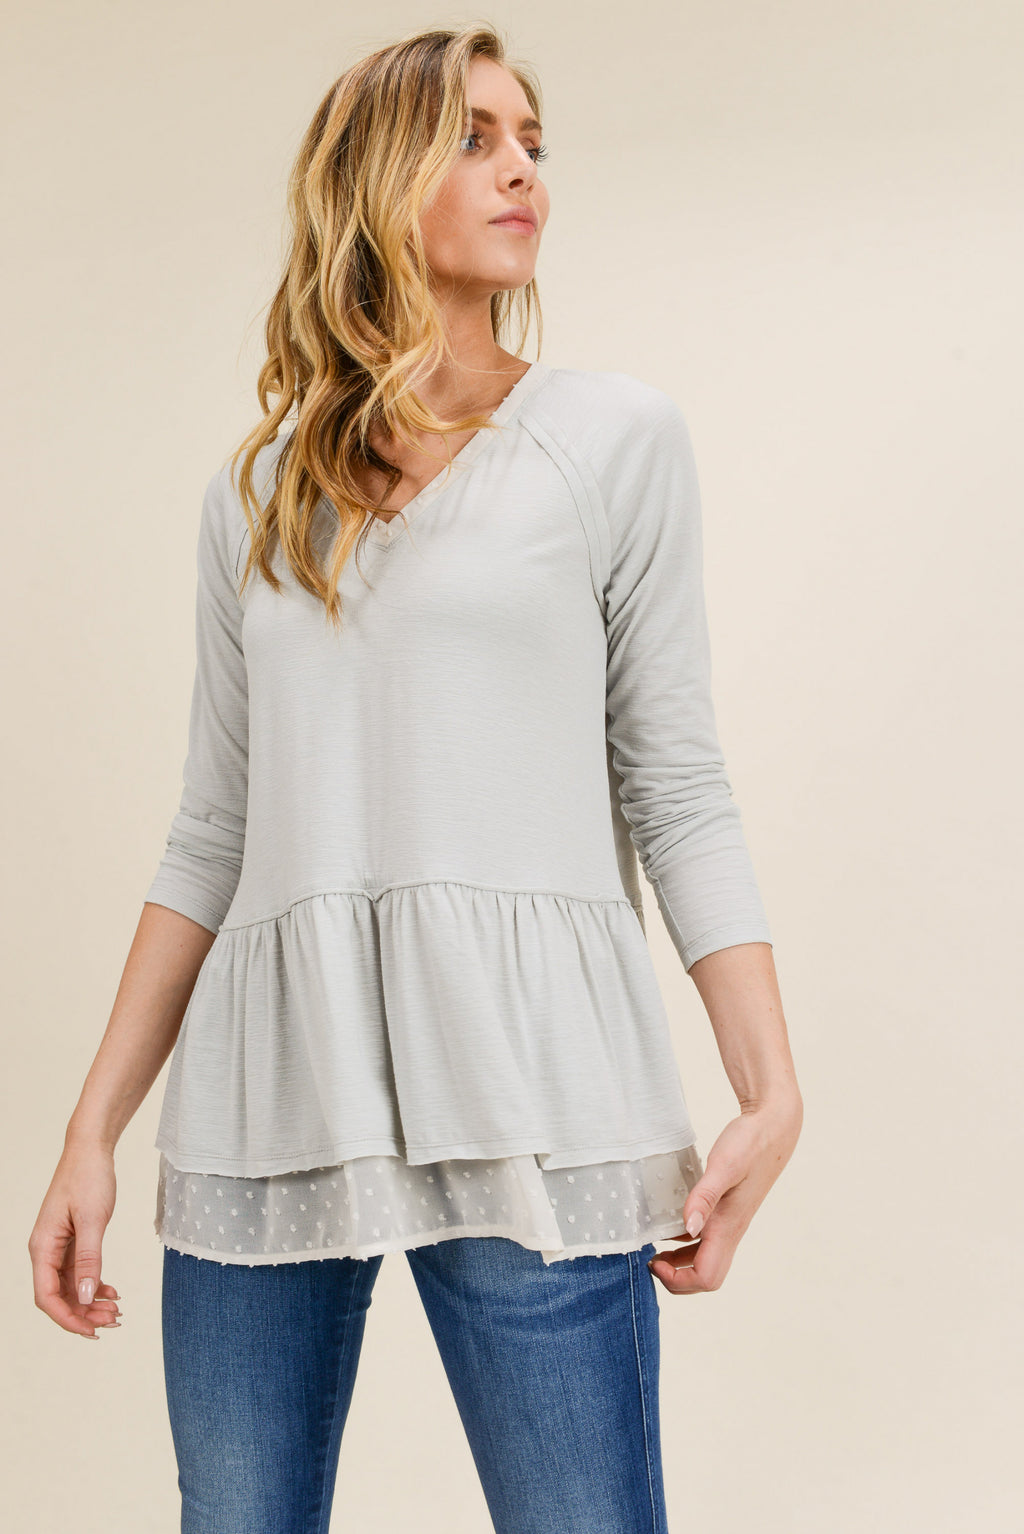 Deep V Neck Bottom Ruffled Top with Raw Edge